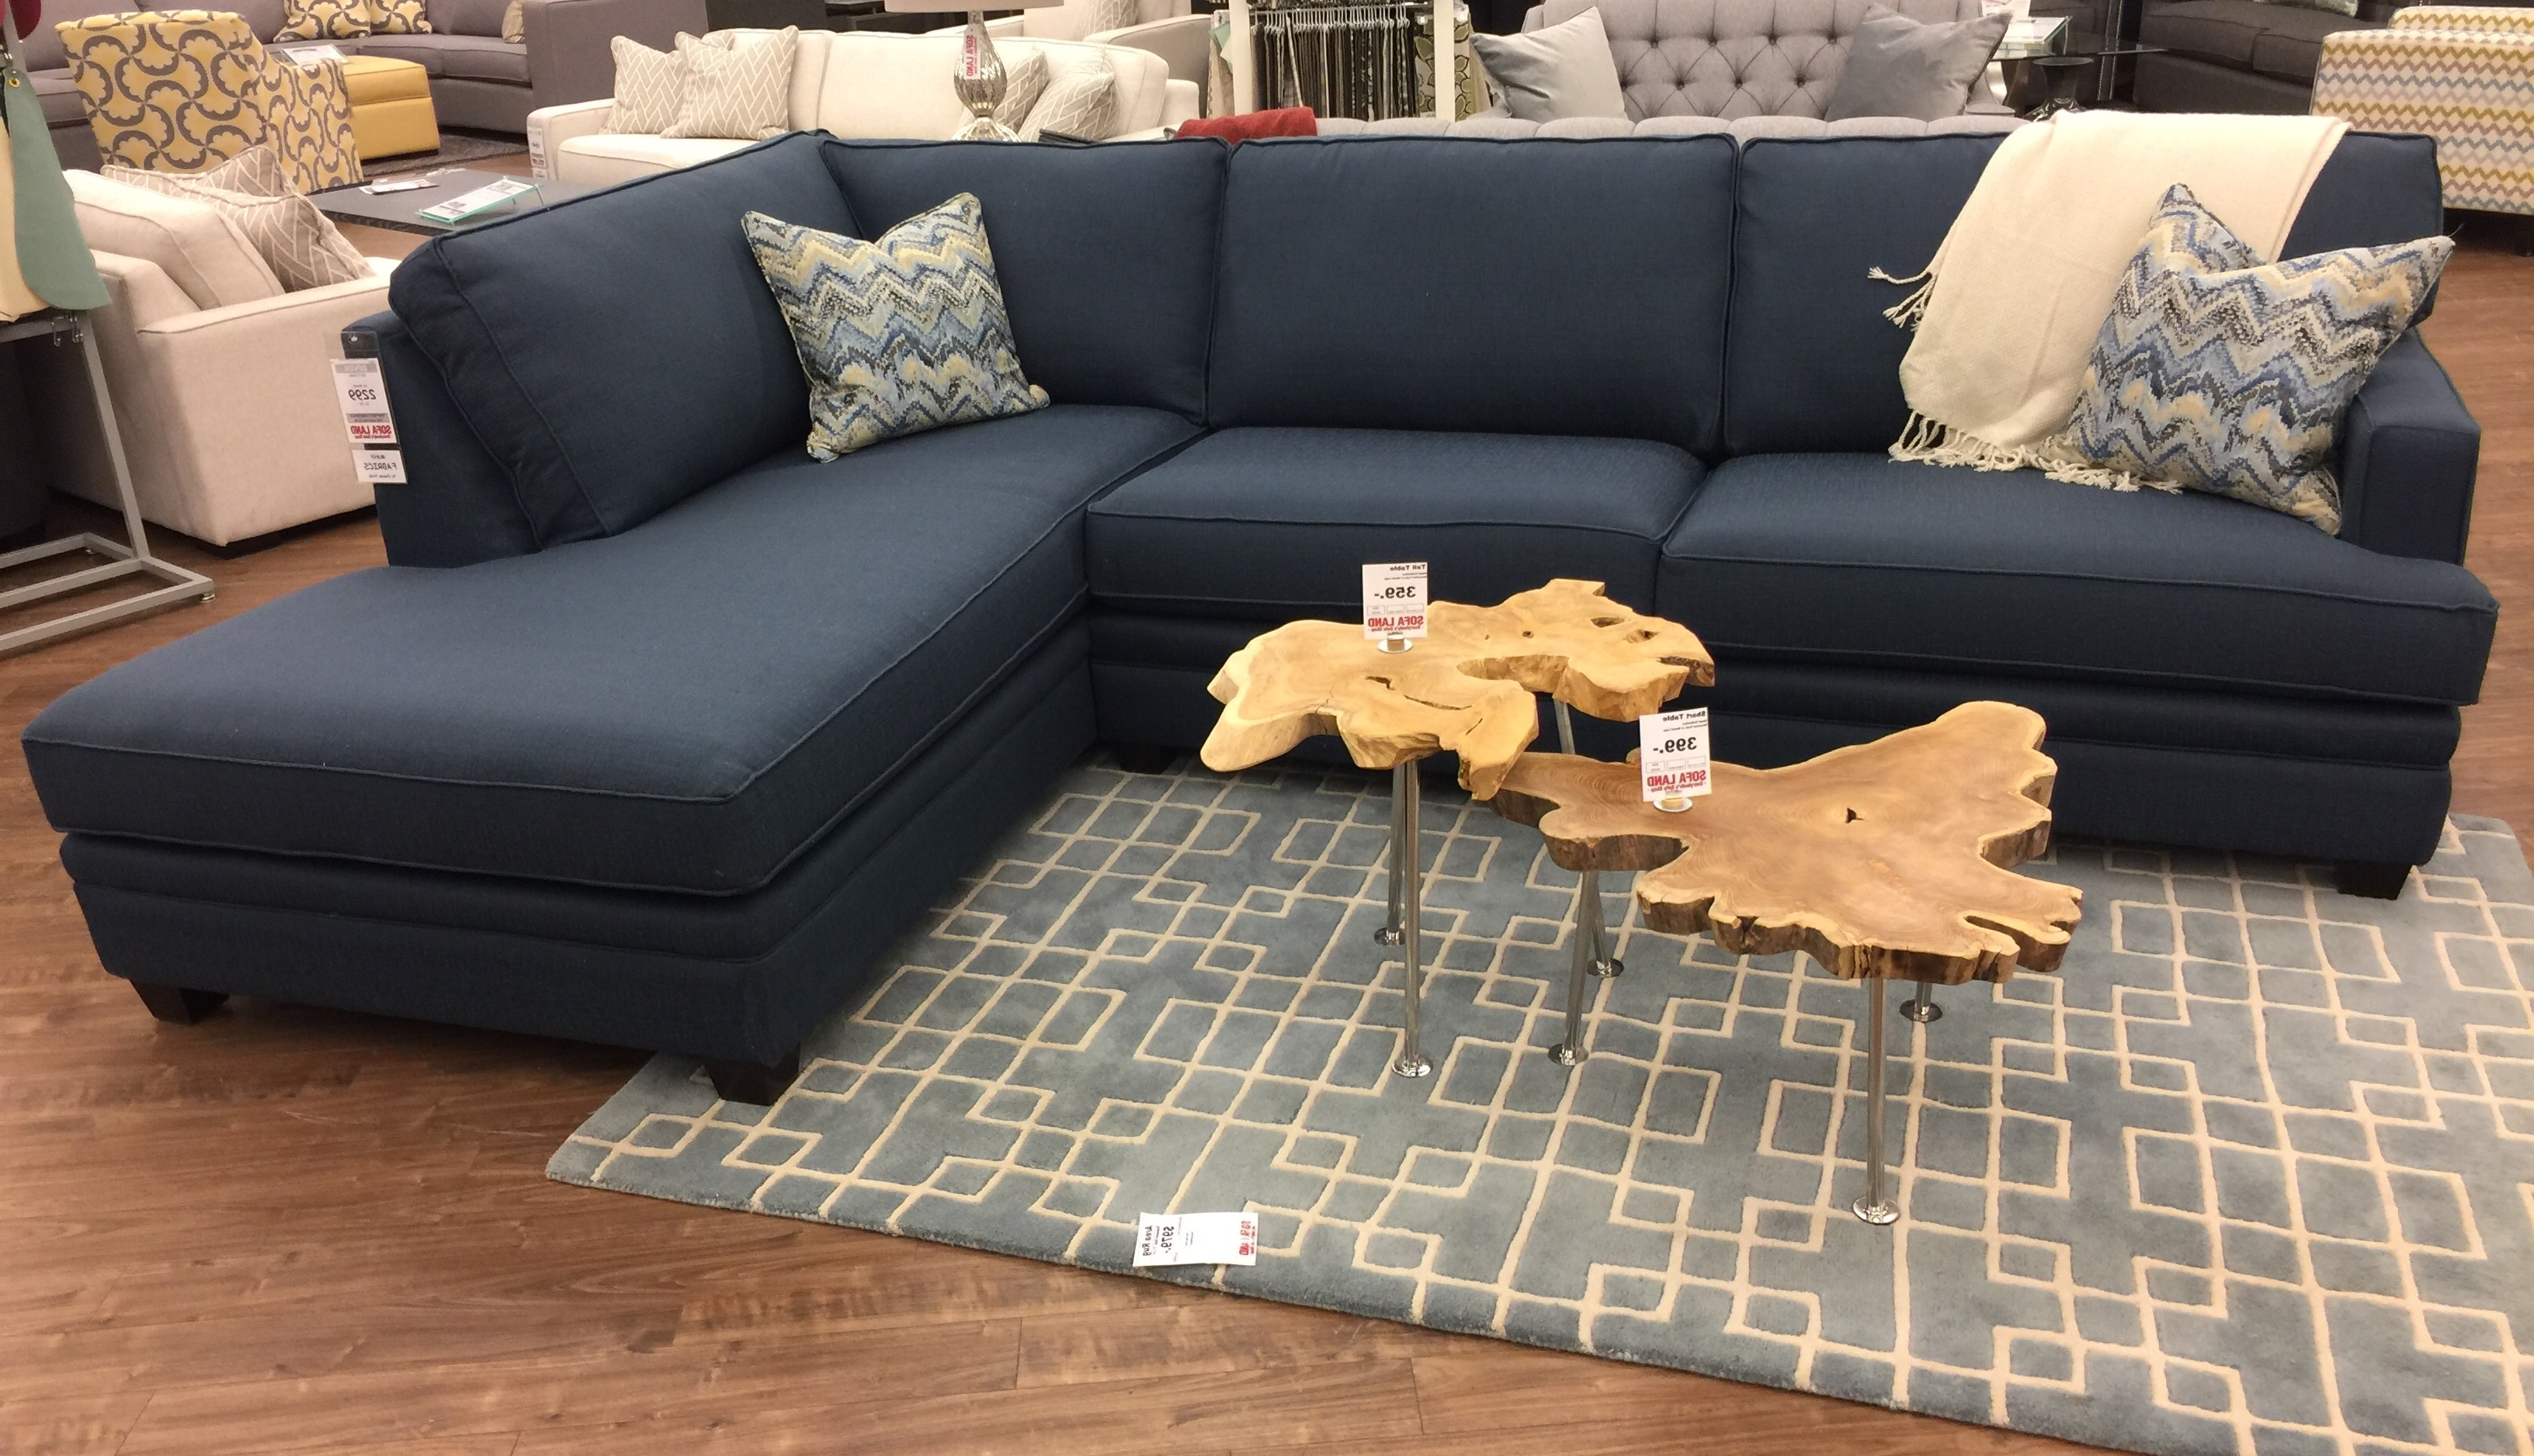 Ontario Canada Sectional Sofas With Regard To Favorite Oh Devin That Colour Looks So Good On You! The Oh So Gorgeous (View 14 of 20)